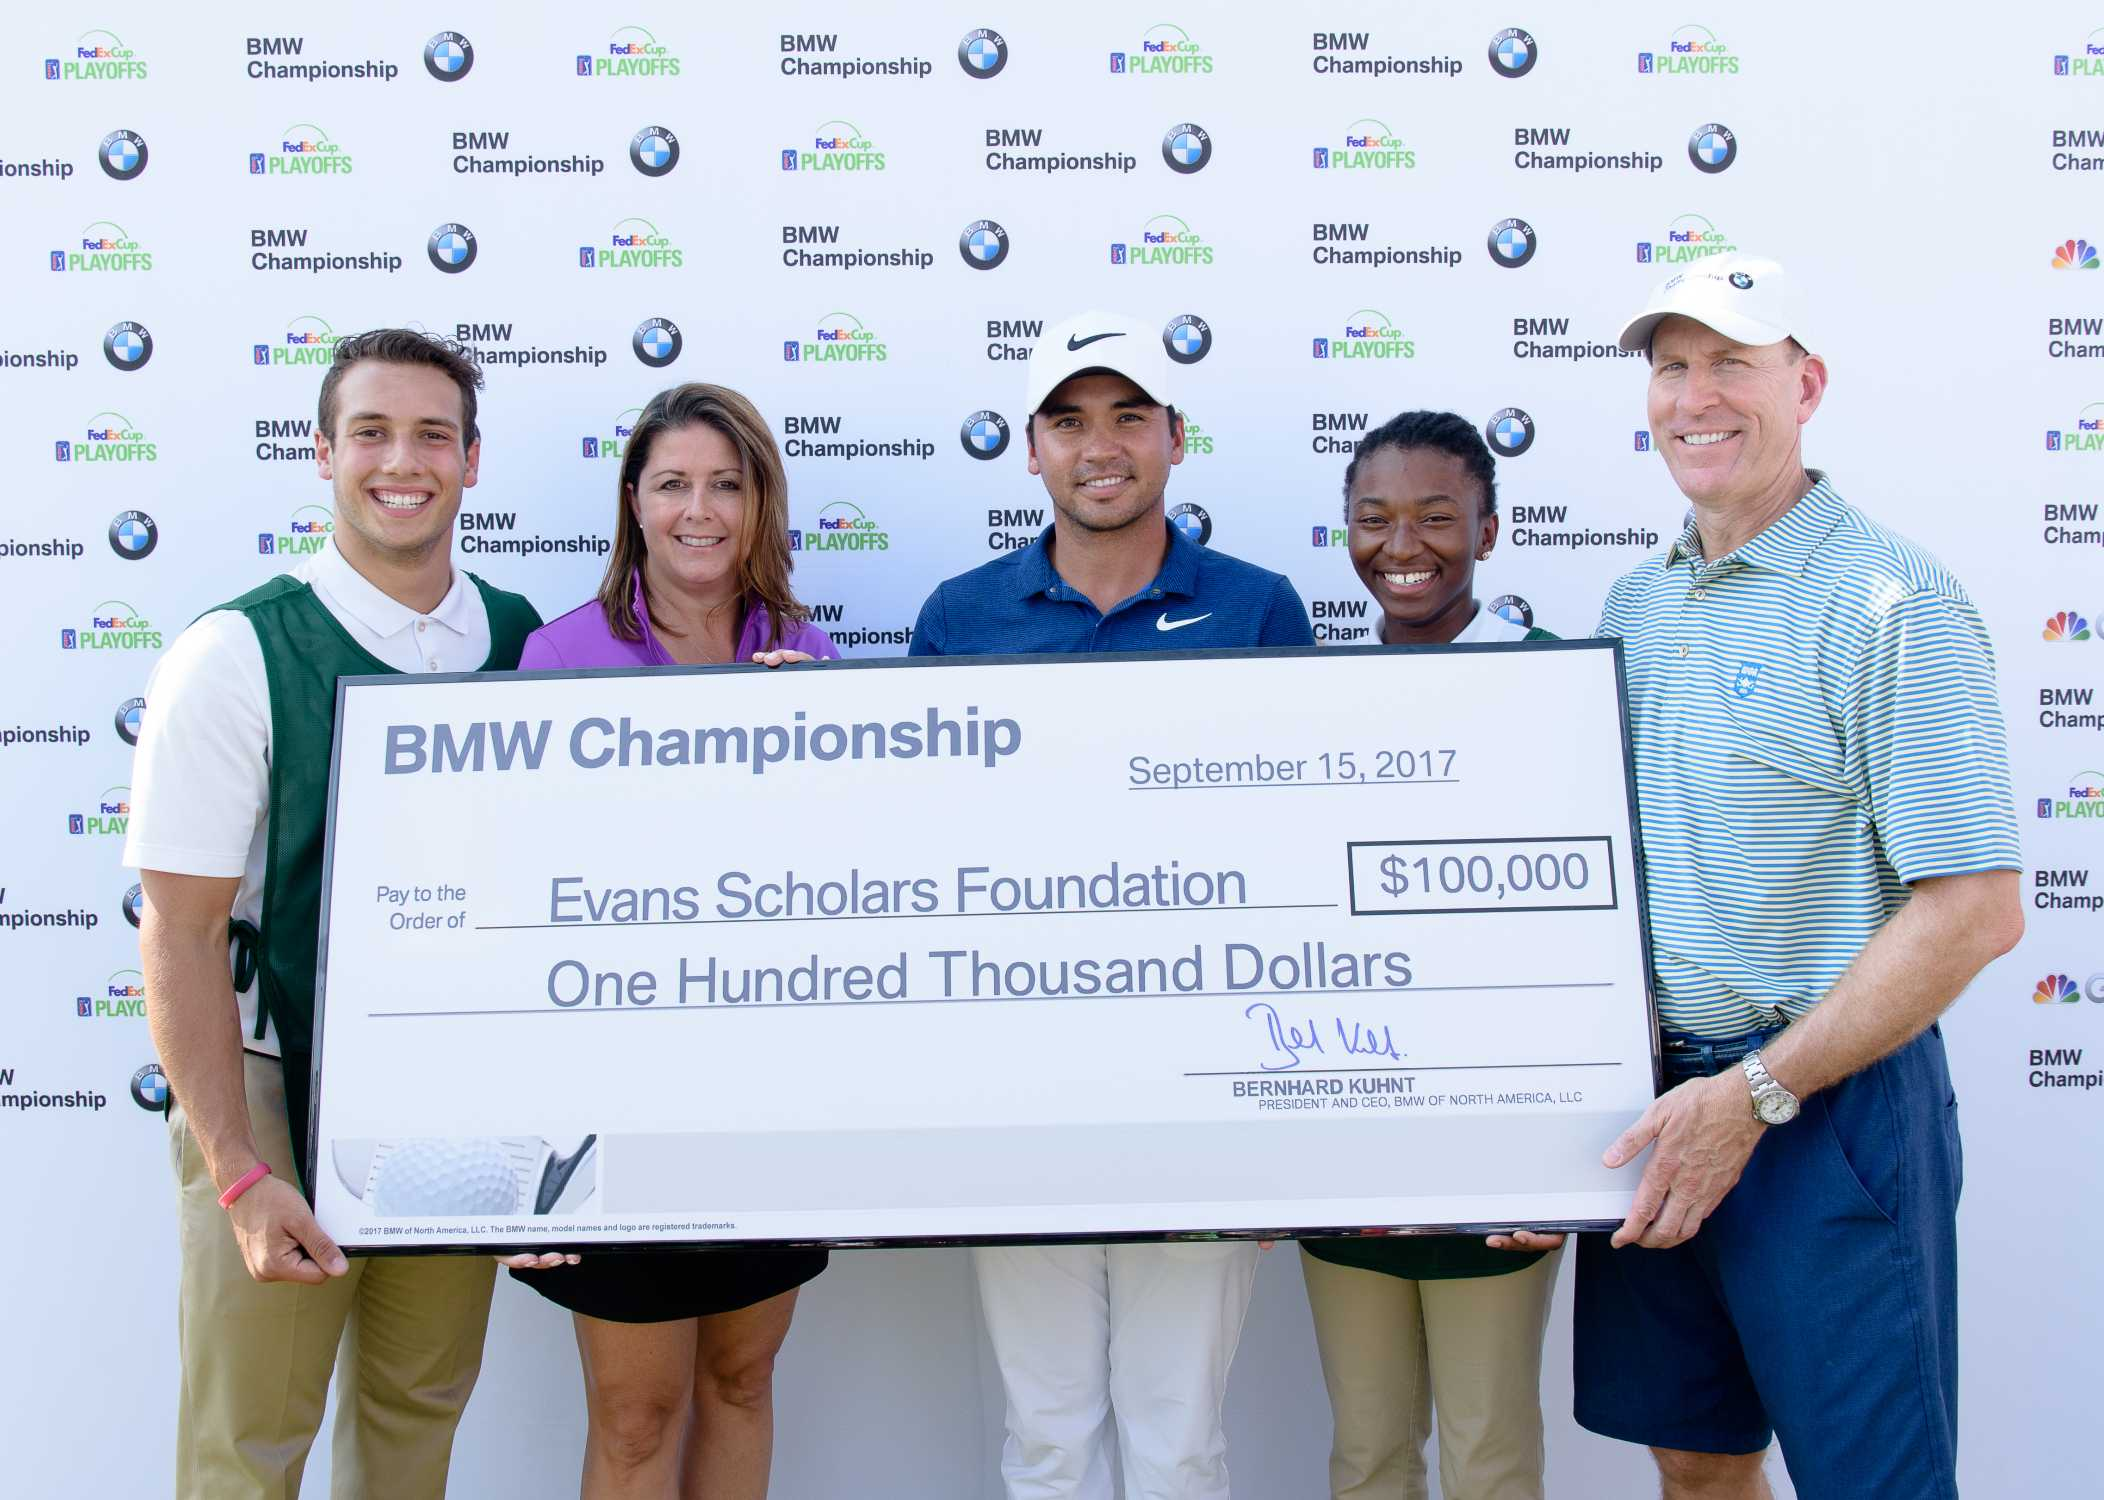 Jason Day Hole-in-One at the 2017 BMW Championship Results